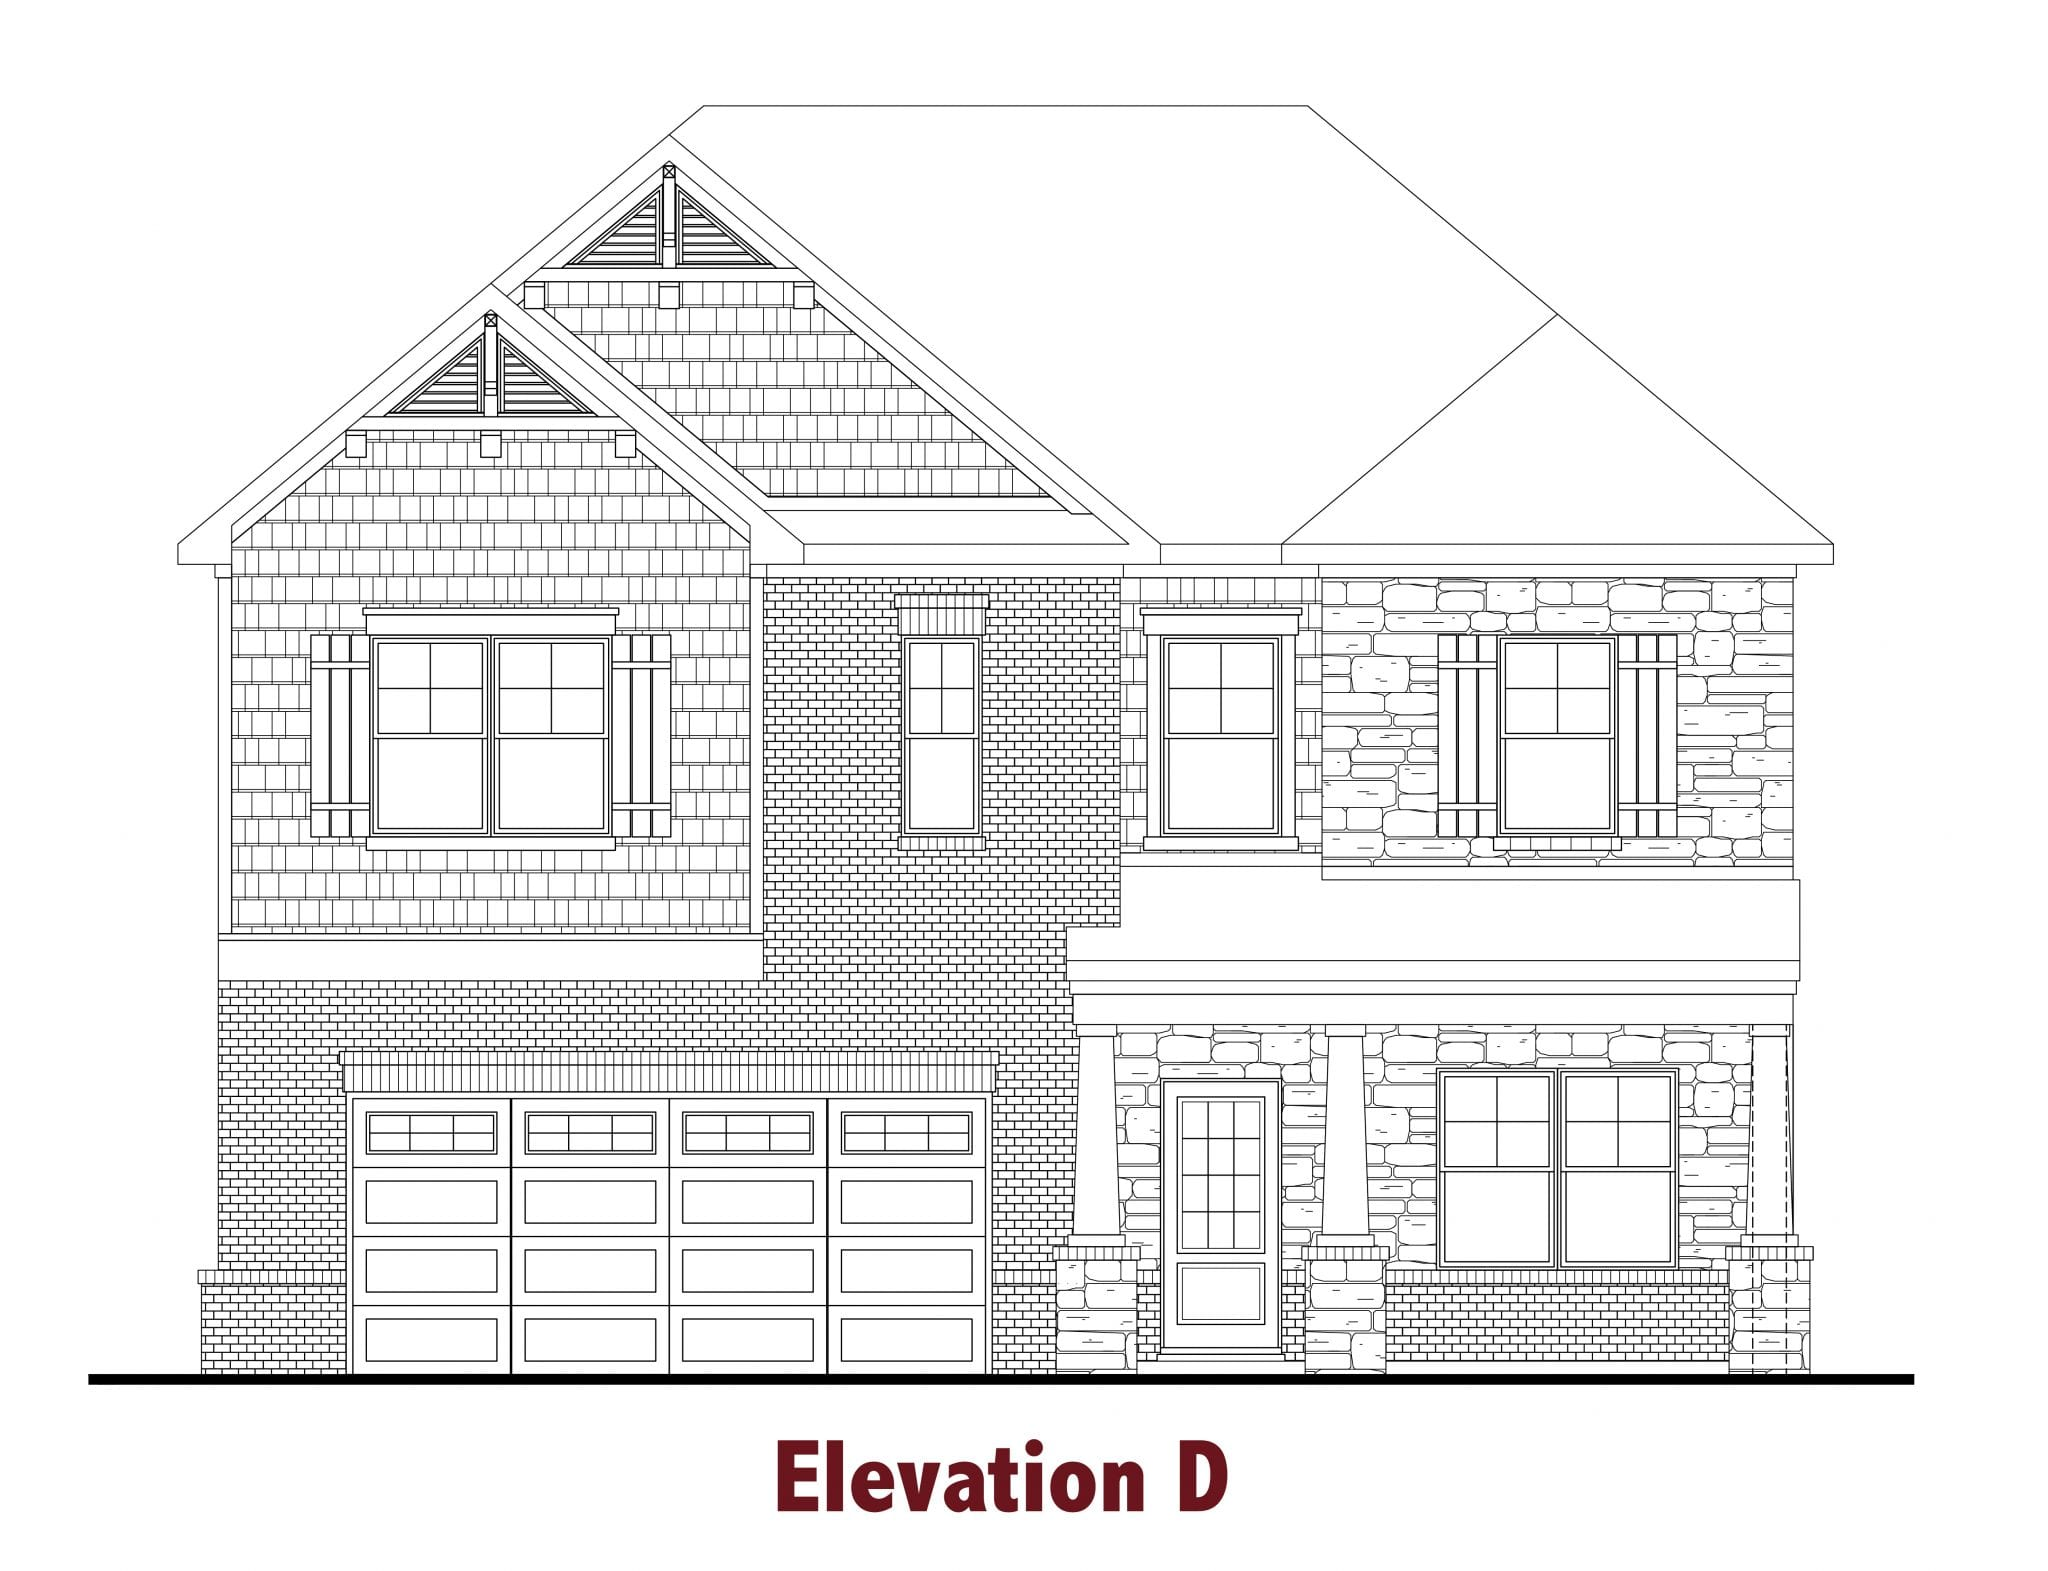 Winsford elevations Image